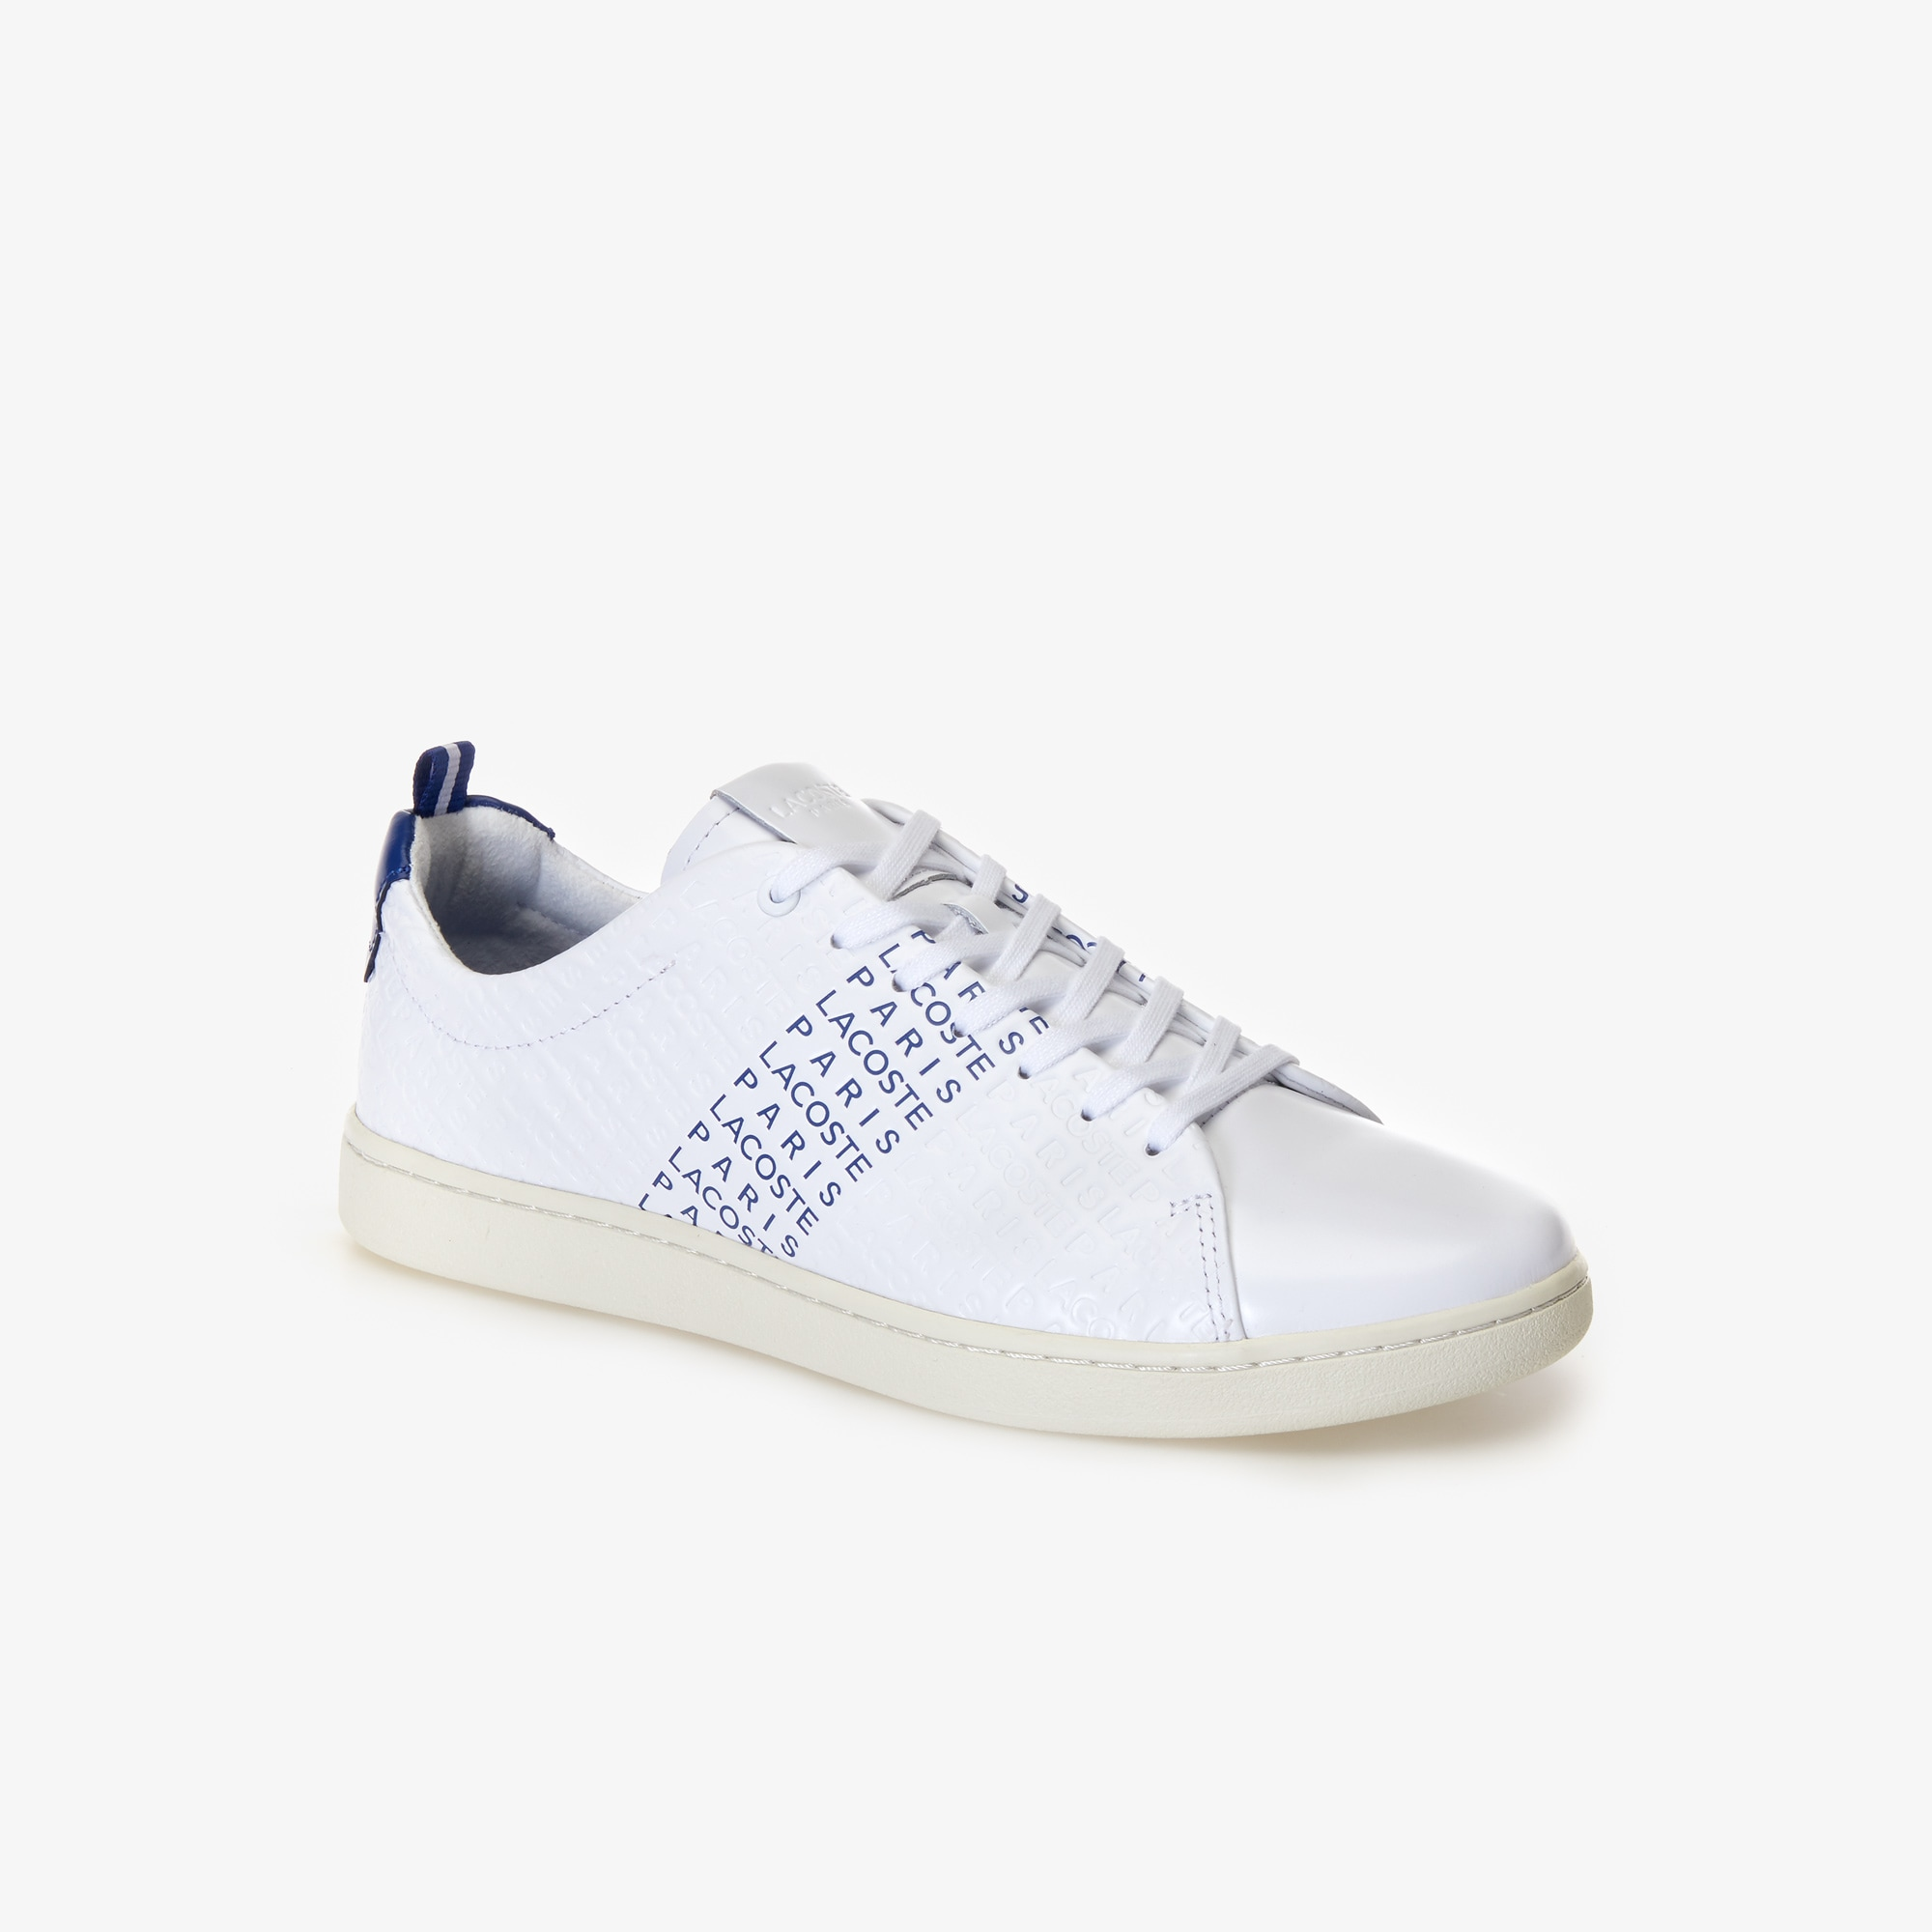 22fa87da1be Men s Carnaby Sneaker